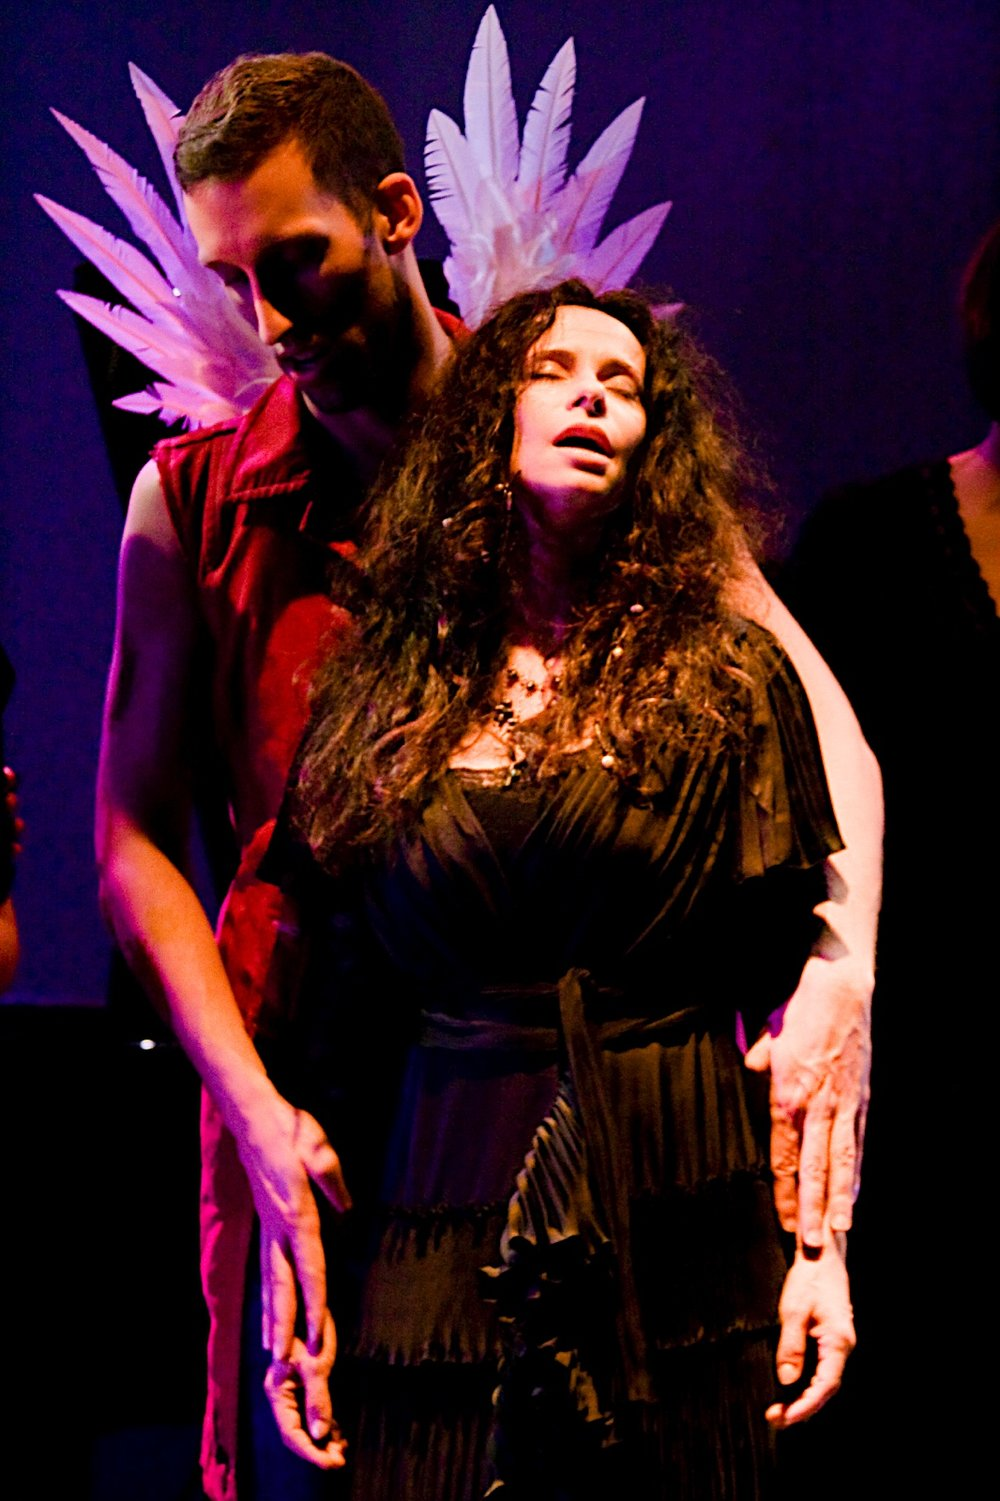 The 10th Muse. Misha Penton, soprano, concept, director. Alison Greene, Michael Walsh, Shelley Auer, Dennis Arrowsmith, Jill Alexander Essbaum, Kade Smith, with Stephen Jones, piano, et al. Photos: E. Melear.